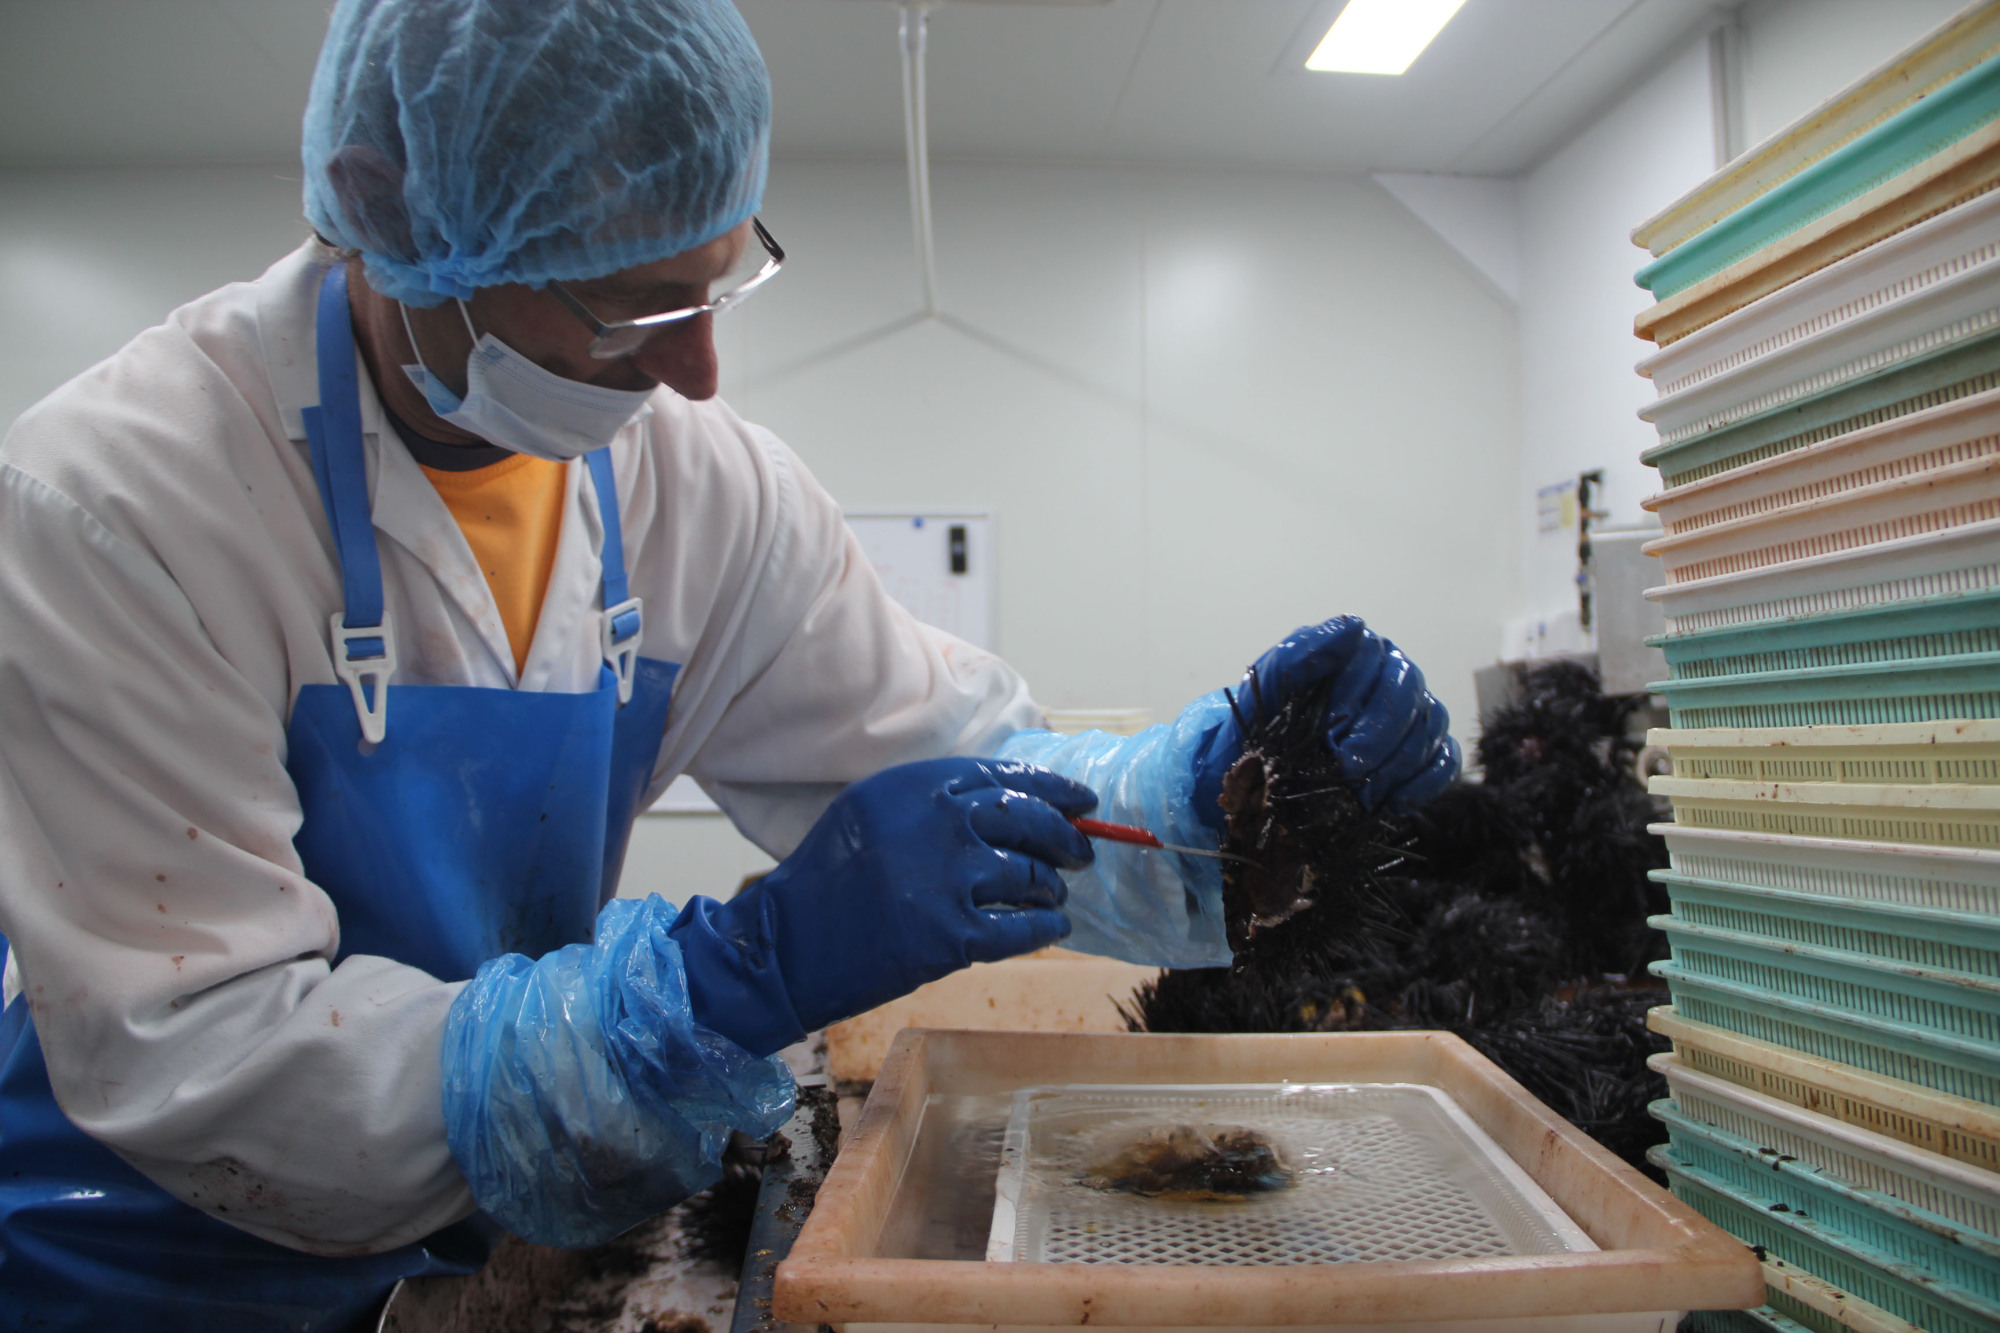 A worker at Ralph's Tasmanian Seafood separates sea urchin roe from innards at a processing facility in Electrona, Australia, on Jan. 23. | KYODO